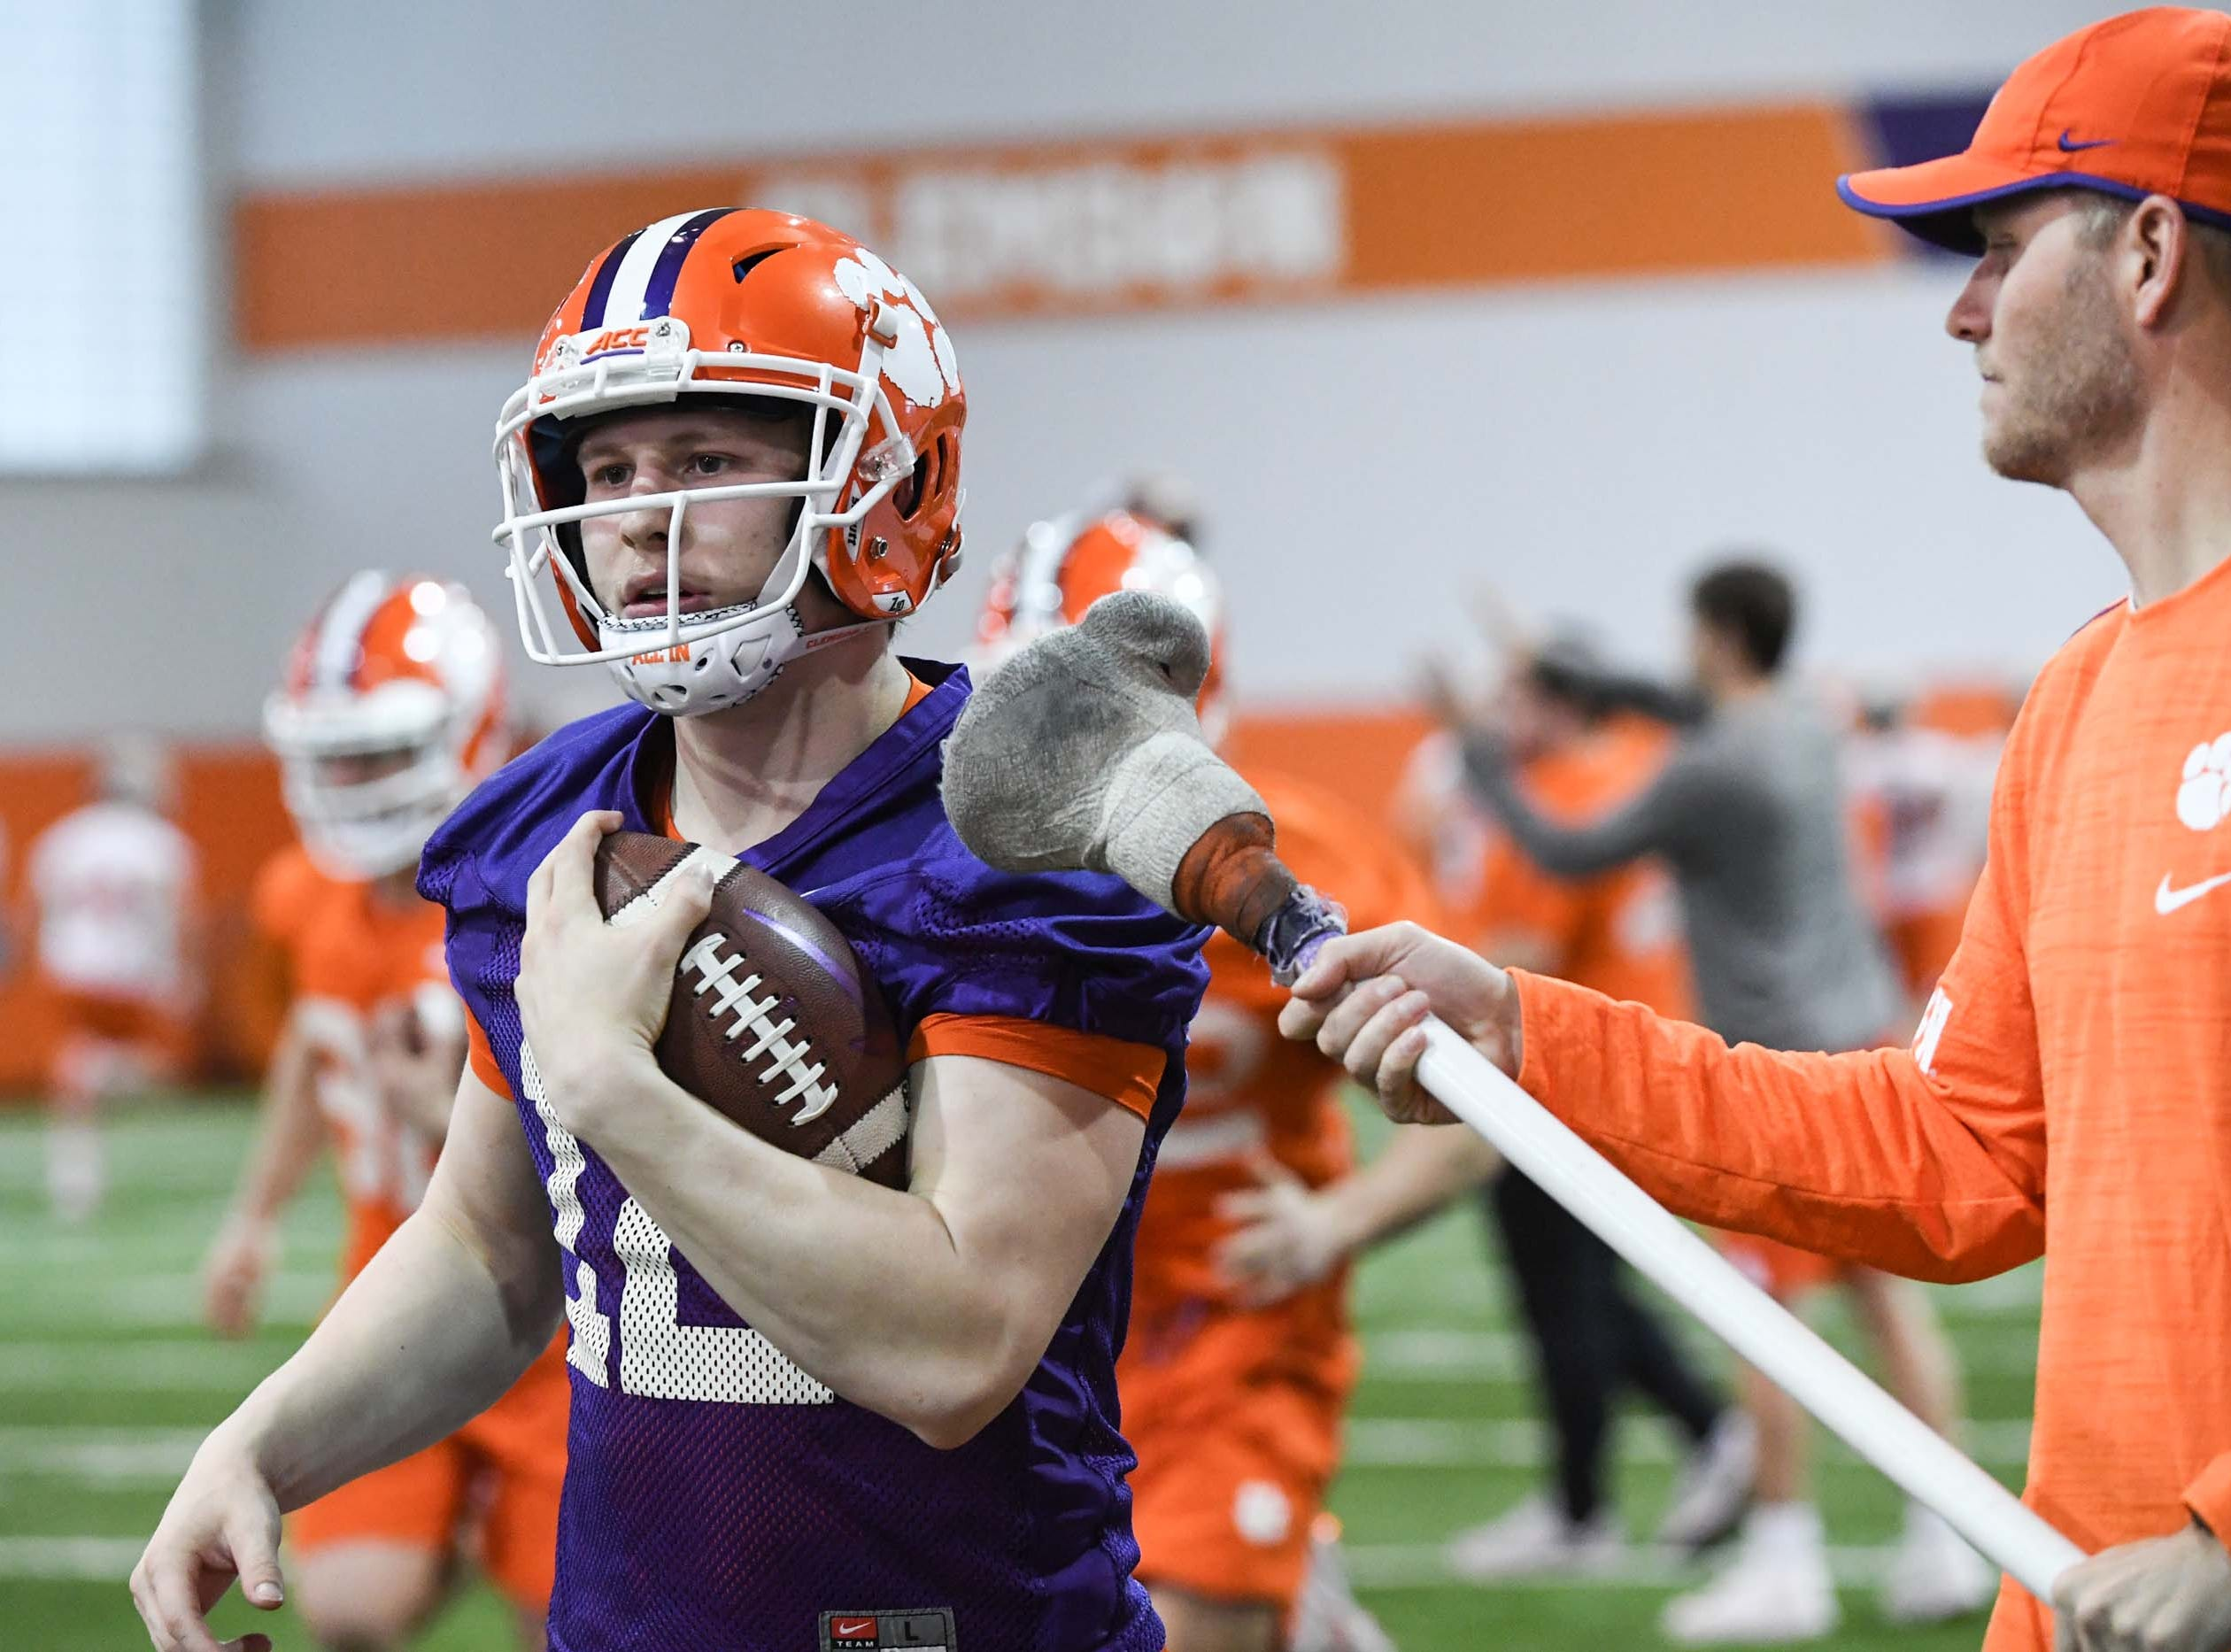 Clemson quarterback Ben Batson runs by quarterbacks coach Brandon Streeter during practice at the Poe Indoor Facility in Clemson Friday.